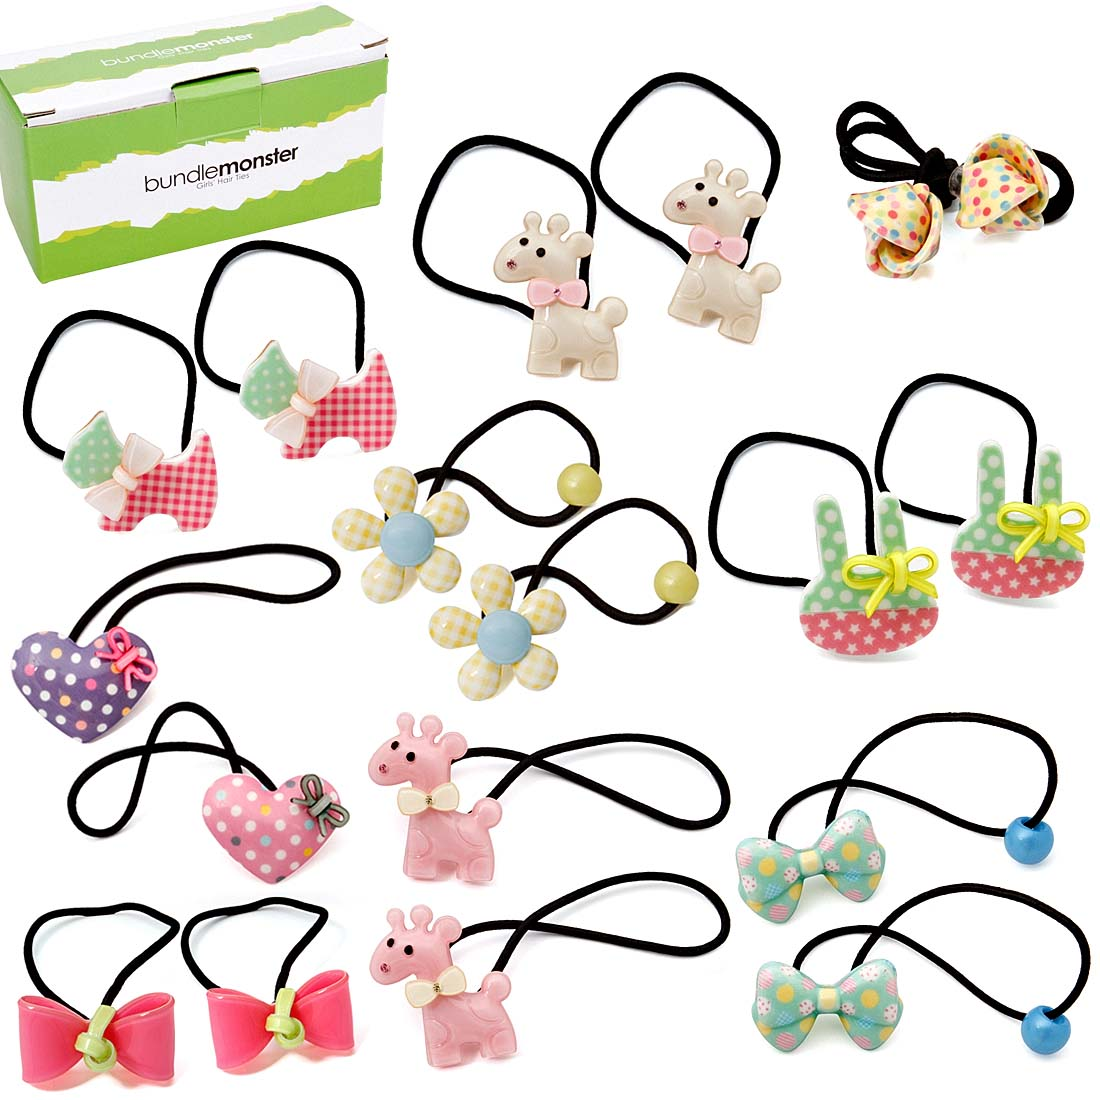 Bundle Monster 9 pair Baby Girls Hard Animal Elastic Band Hair Tie Accessory Set